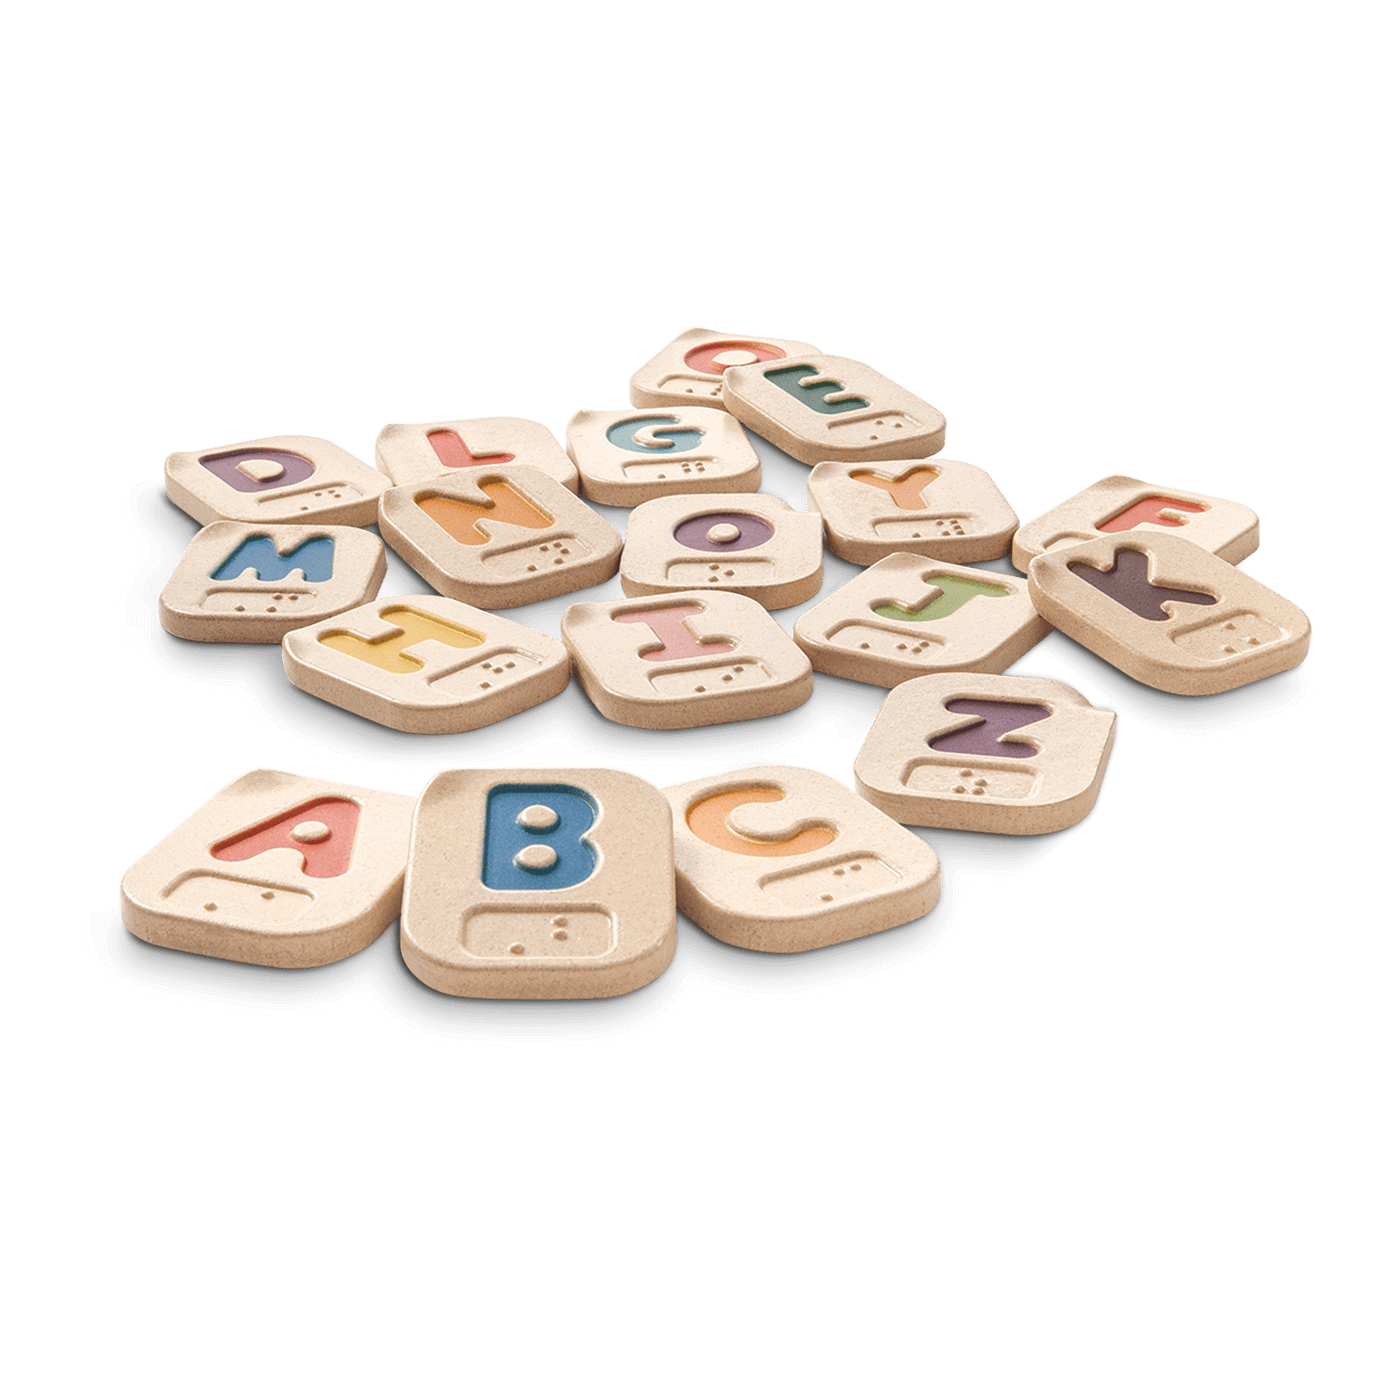 5671_PlanToys_BRAILLE_ALPHABET_A-Z_Learning_and_Education_Pre_Braille_Language_and_Communications_Fine_Motor_2yrs_Wooden_toys_Education_toys_Safety_Toys_Non-toxic_0.png